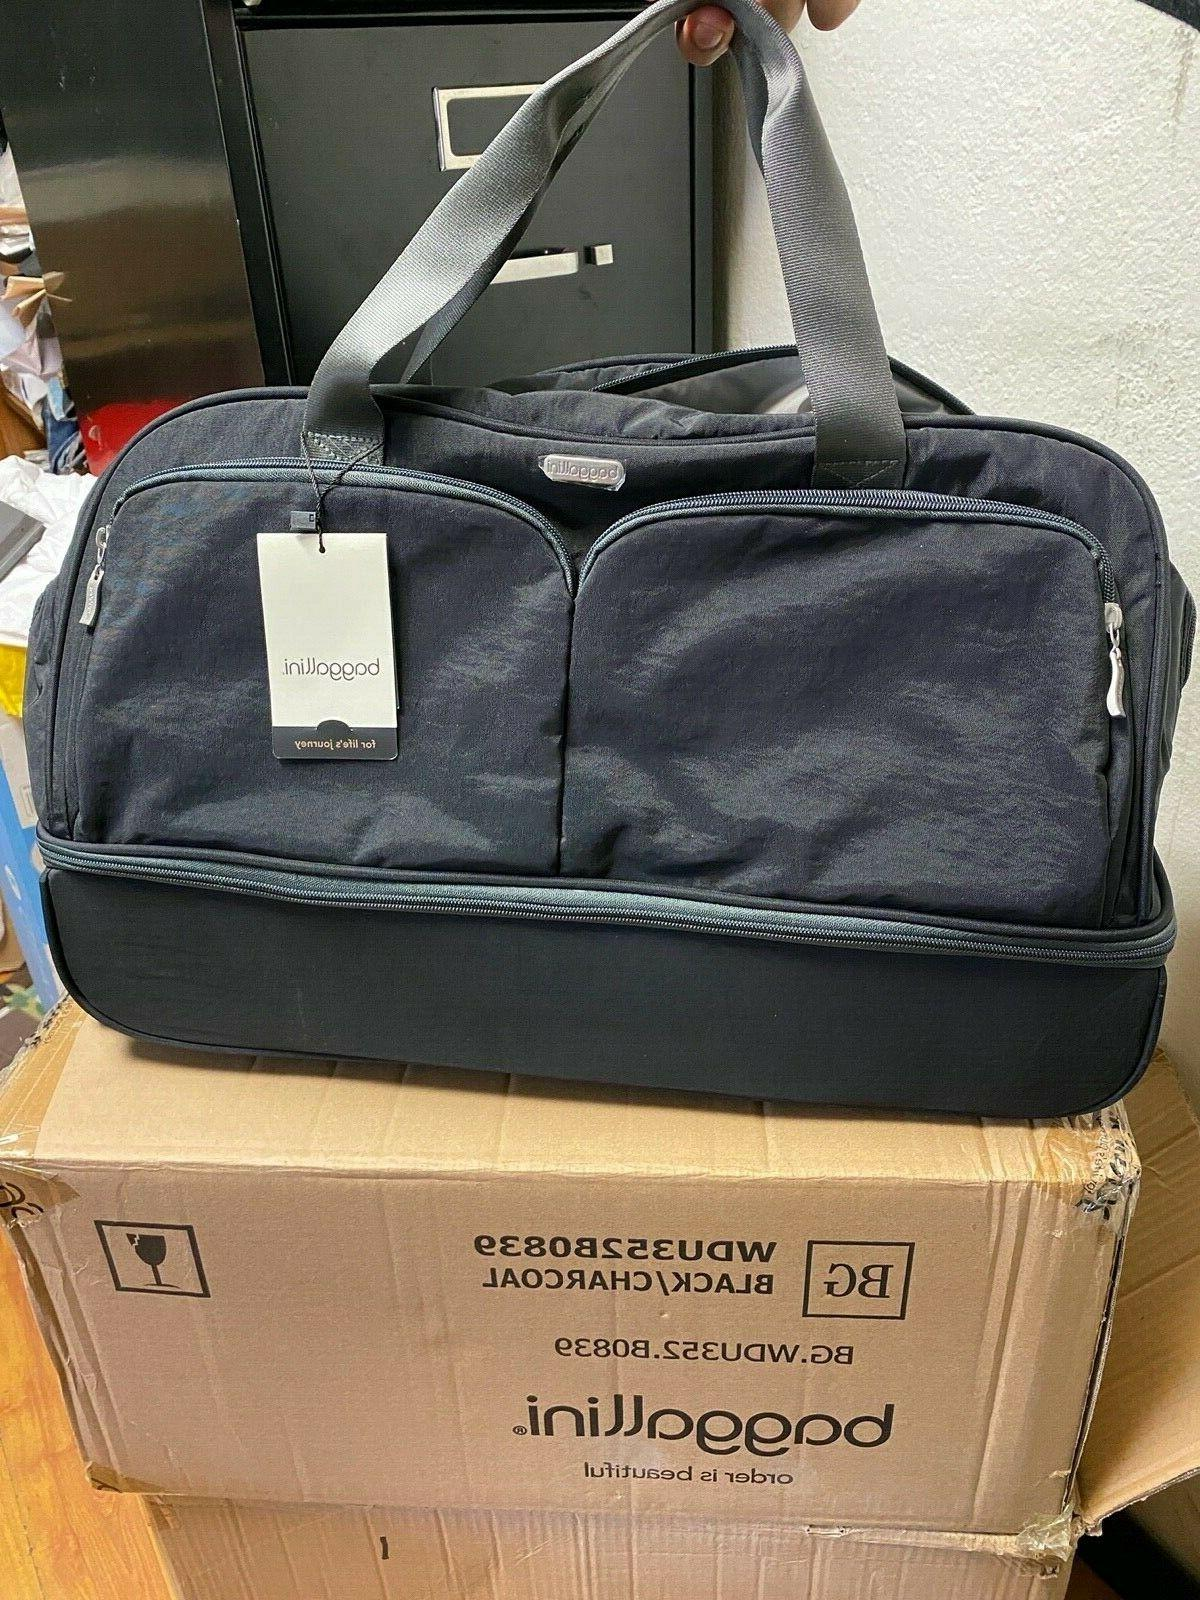 brand new rolling carry on duffle bag